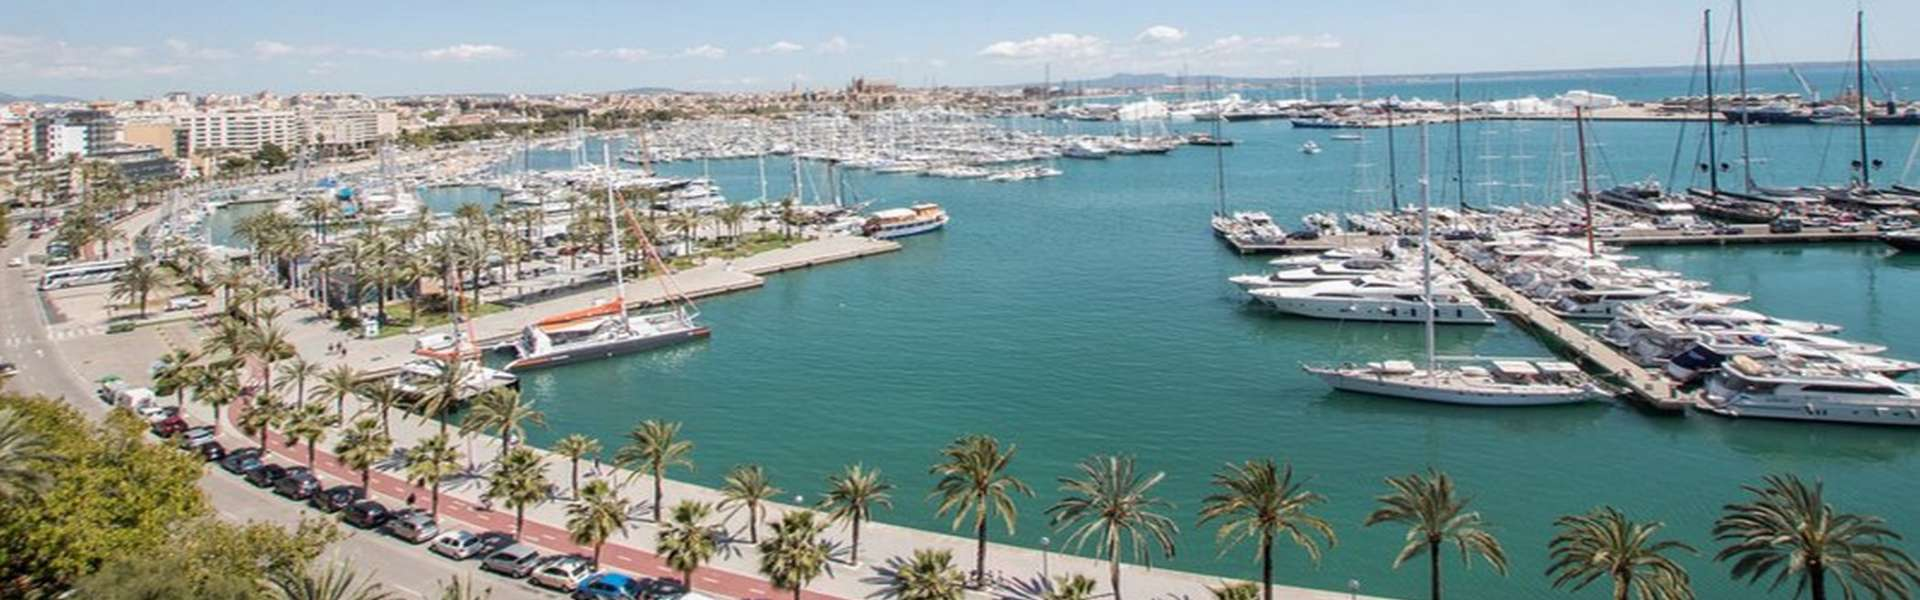 Palma - Apartment designed to embrace contemporary luxury and most spectacular view